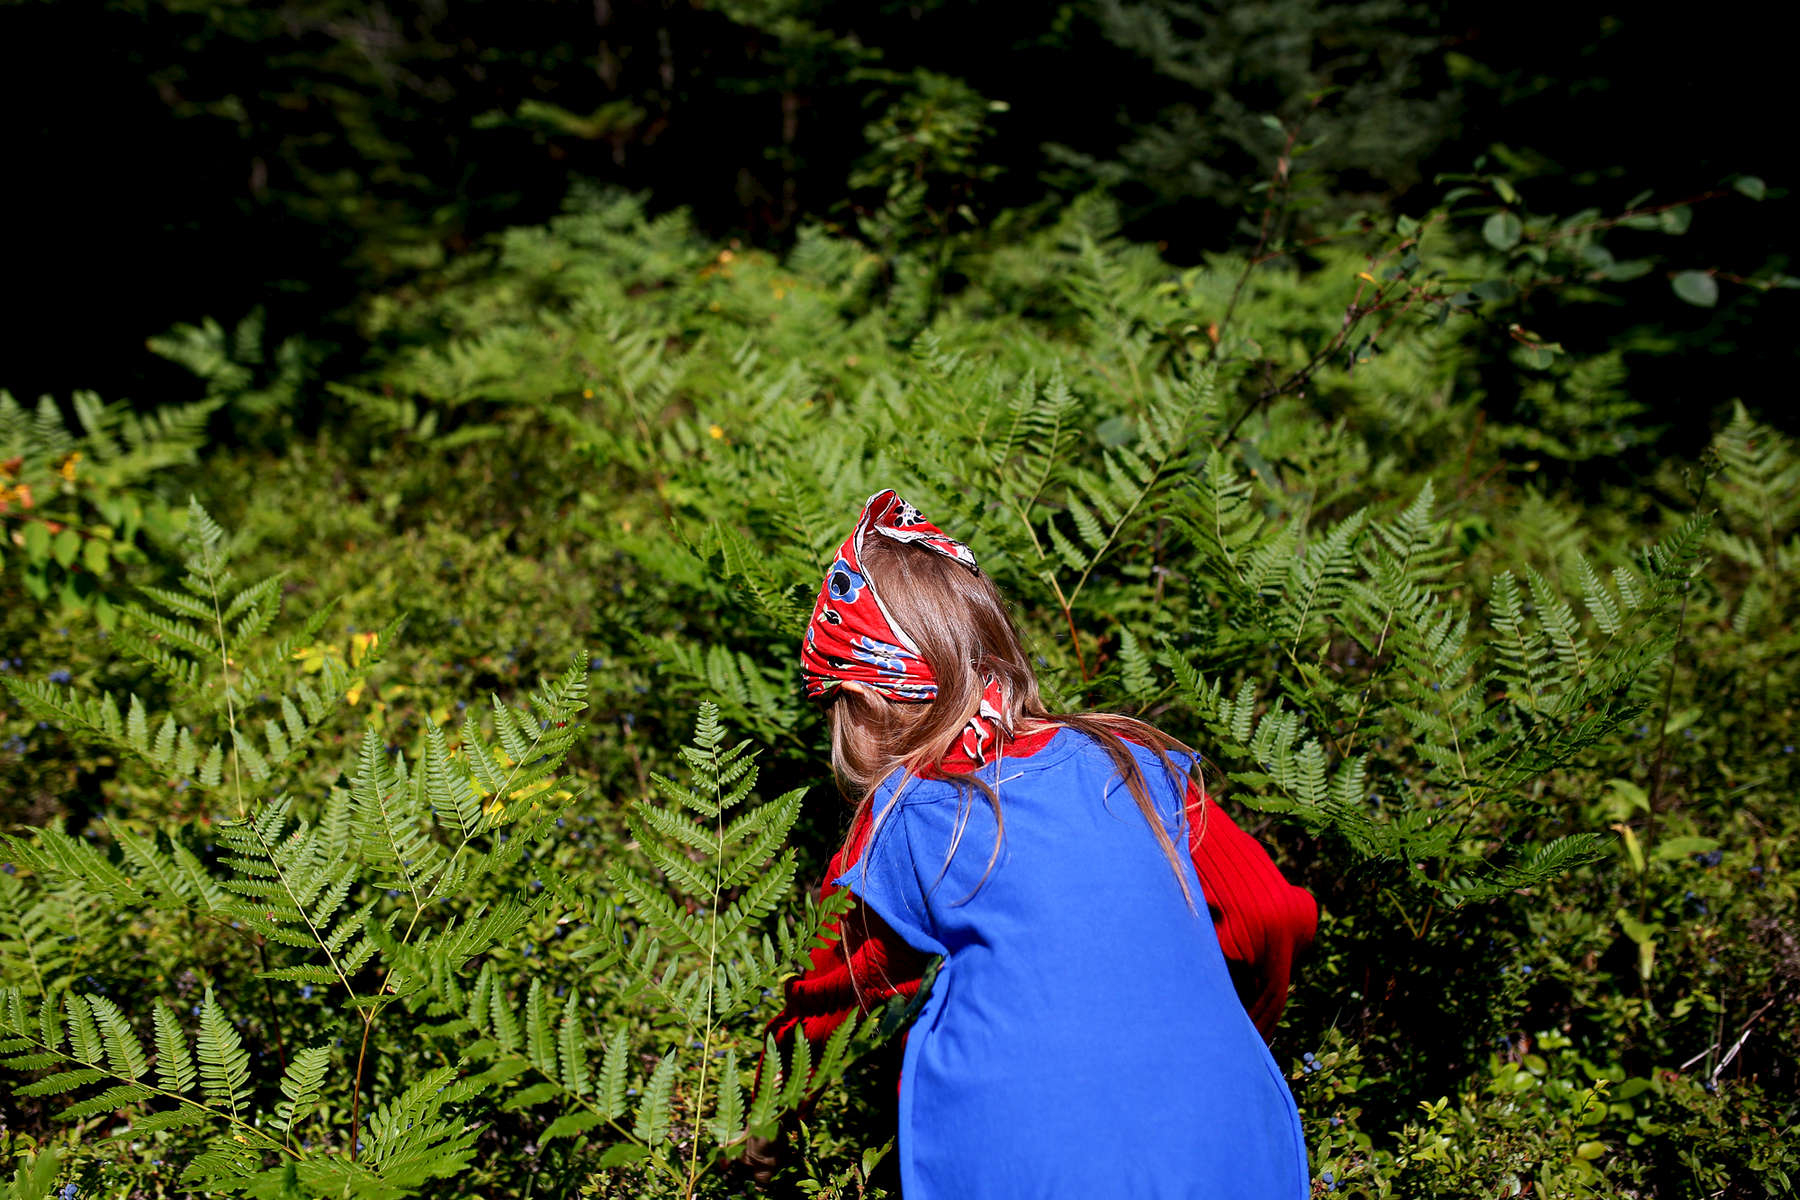 Lila picks blueberries in a forest in Bois Forte.